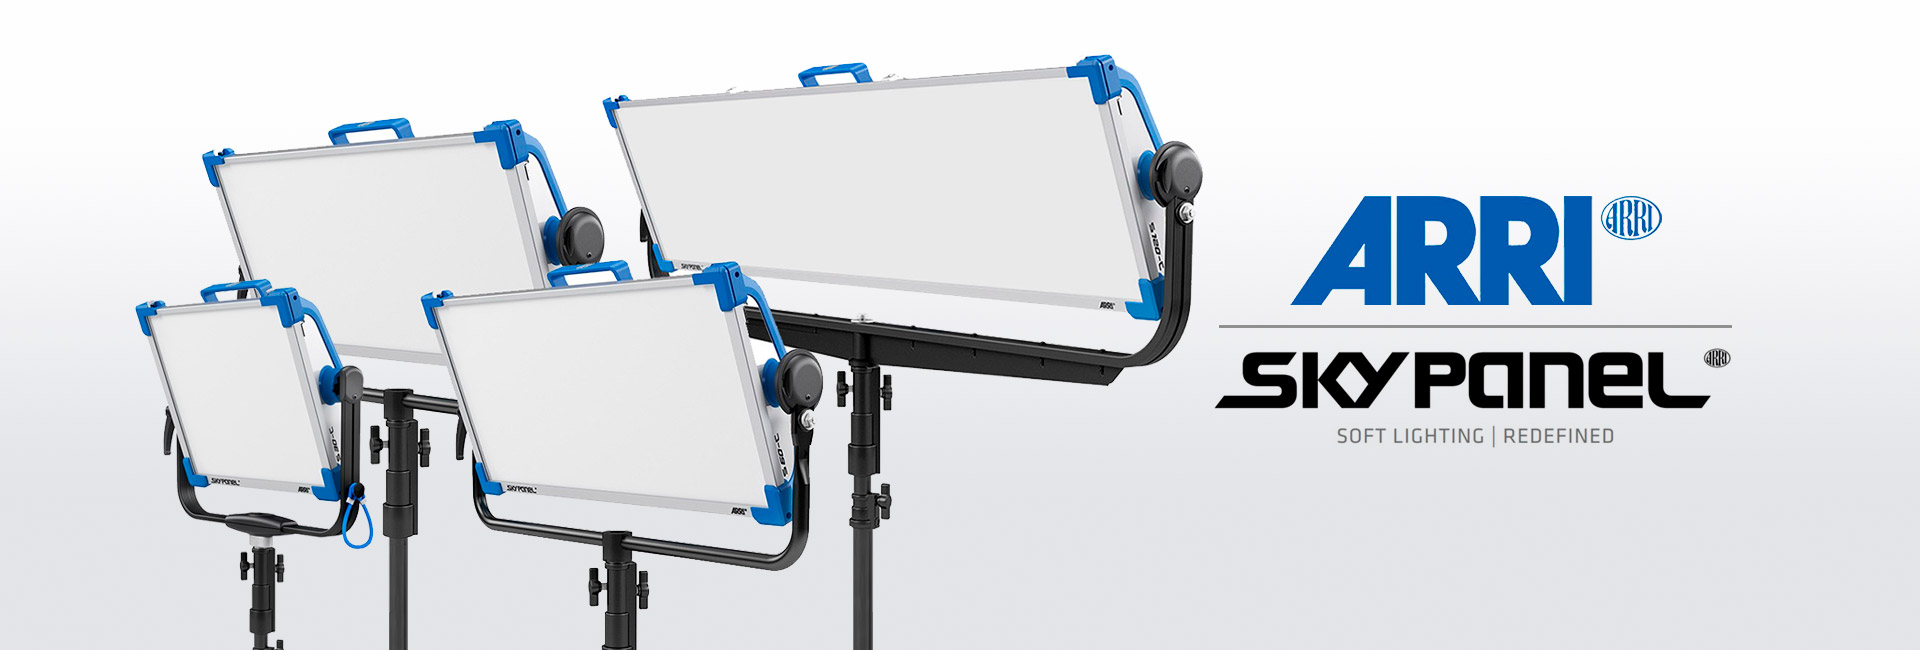 Luces Led Arri Skypanel